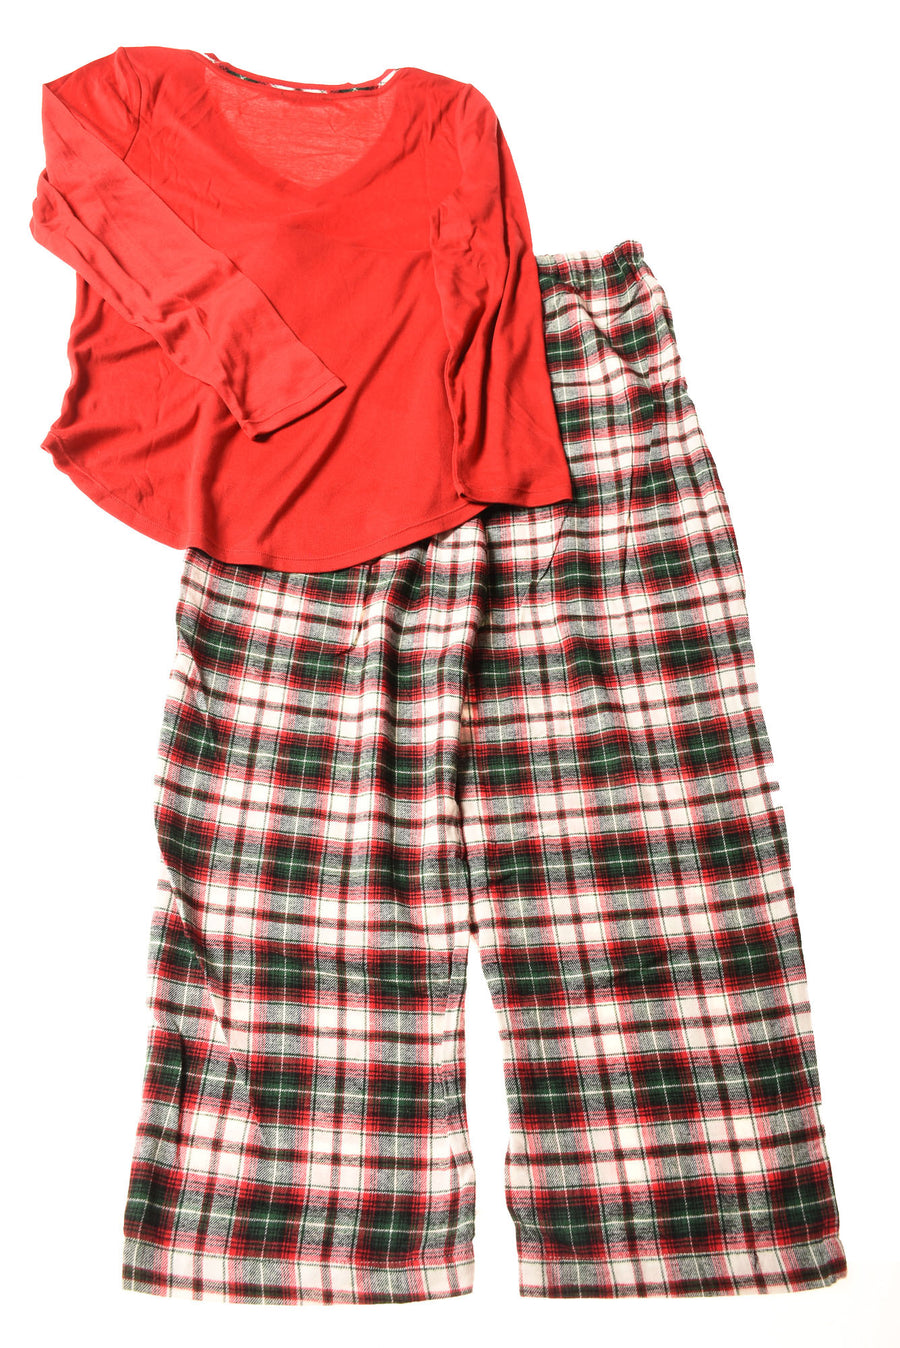 USED Ralph Lauren Women's Pajama's Large Red / Plaid